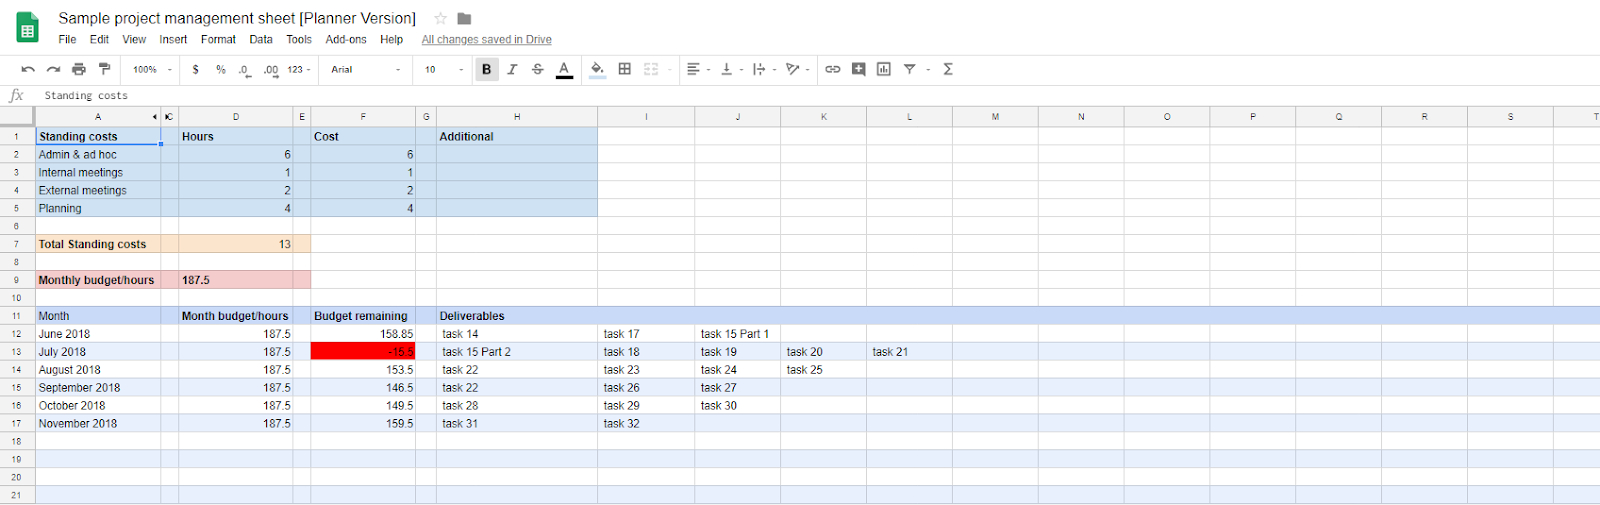 Spending Spreadsheet Google Docs In Visualizing Time: A Project Management Howto Using Google Sheets  Moz